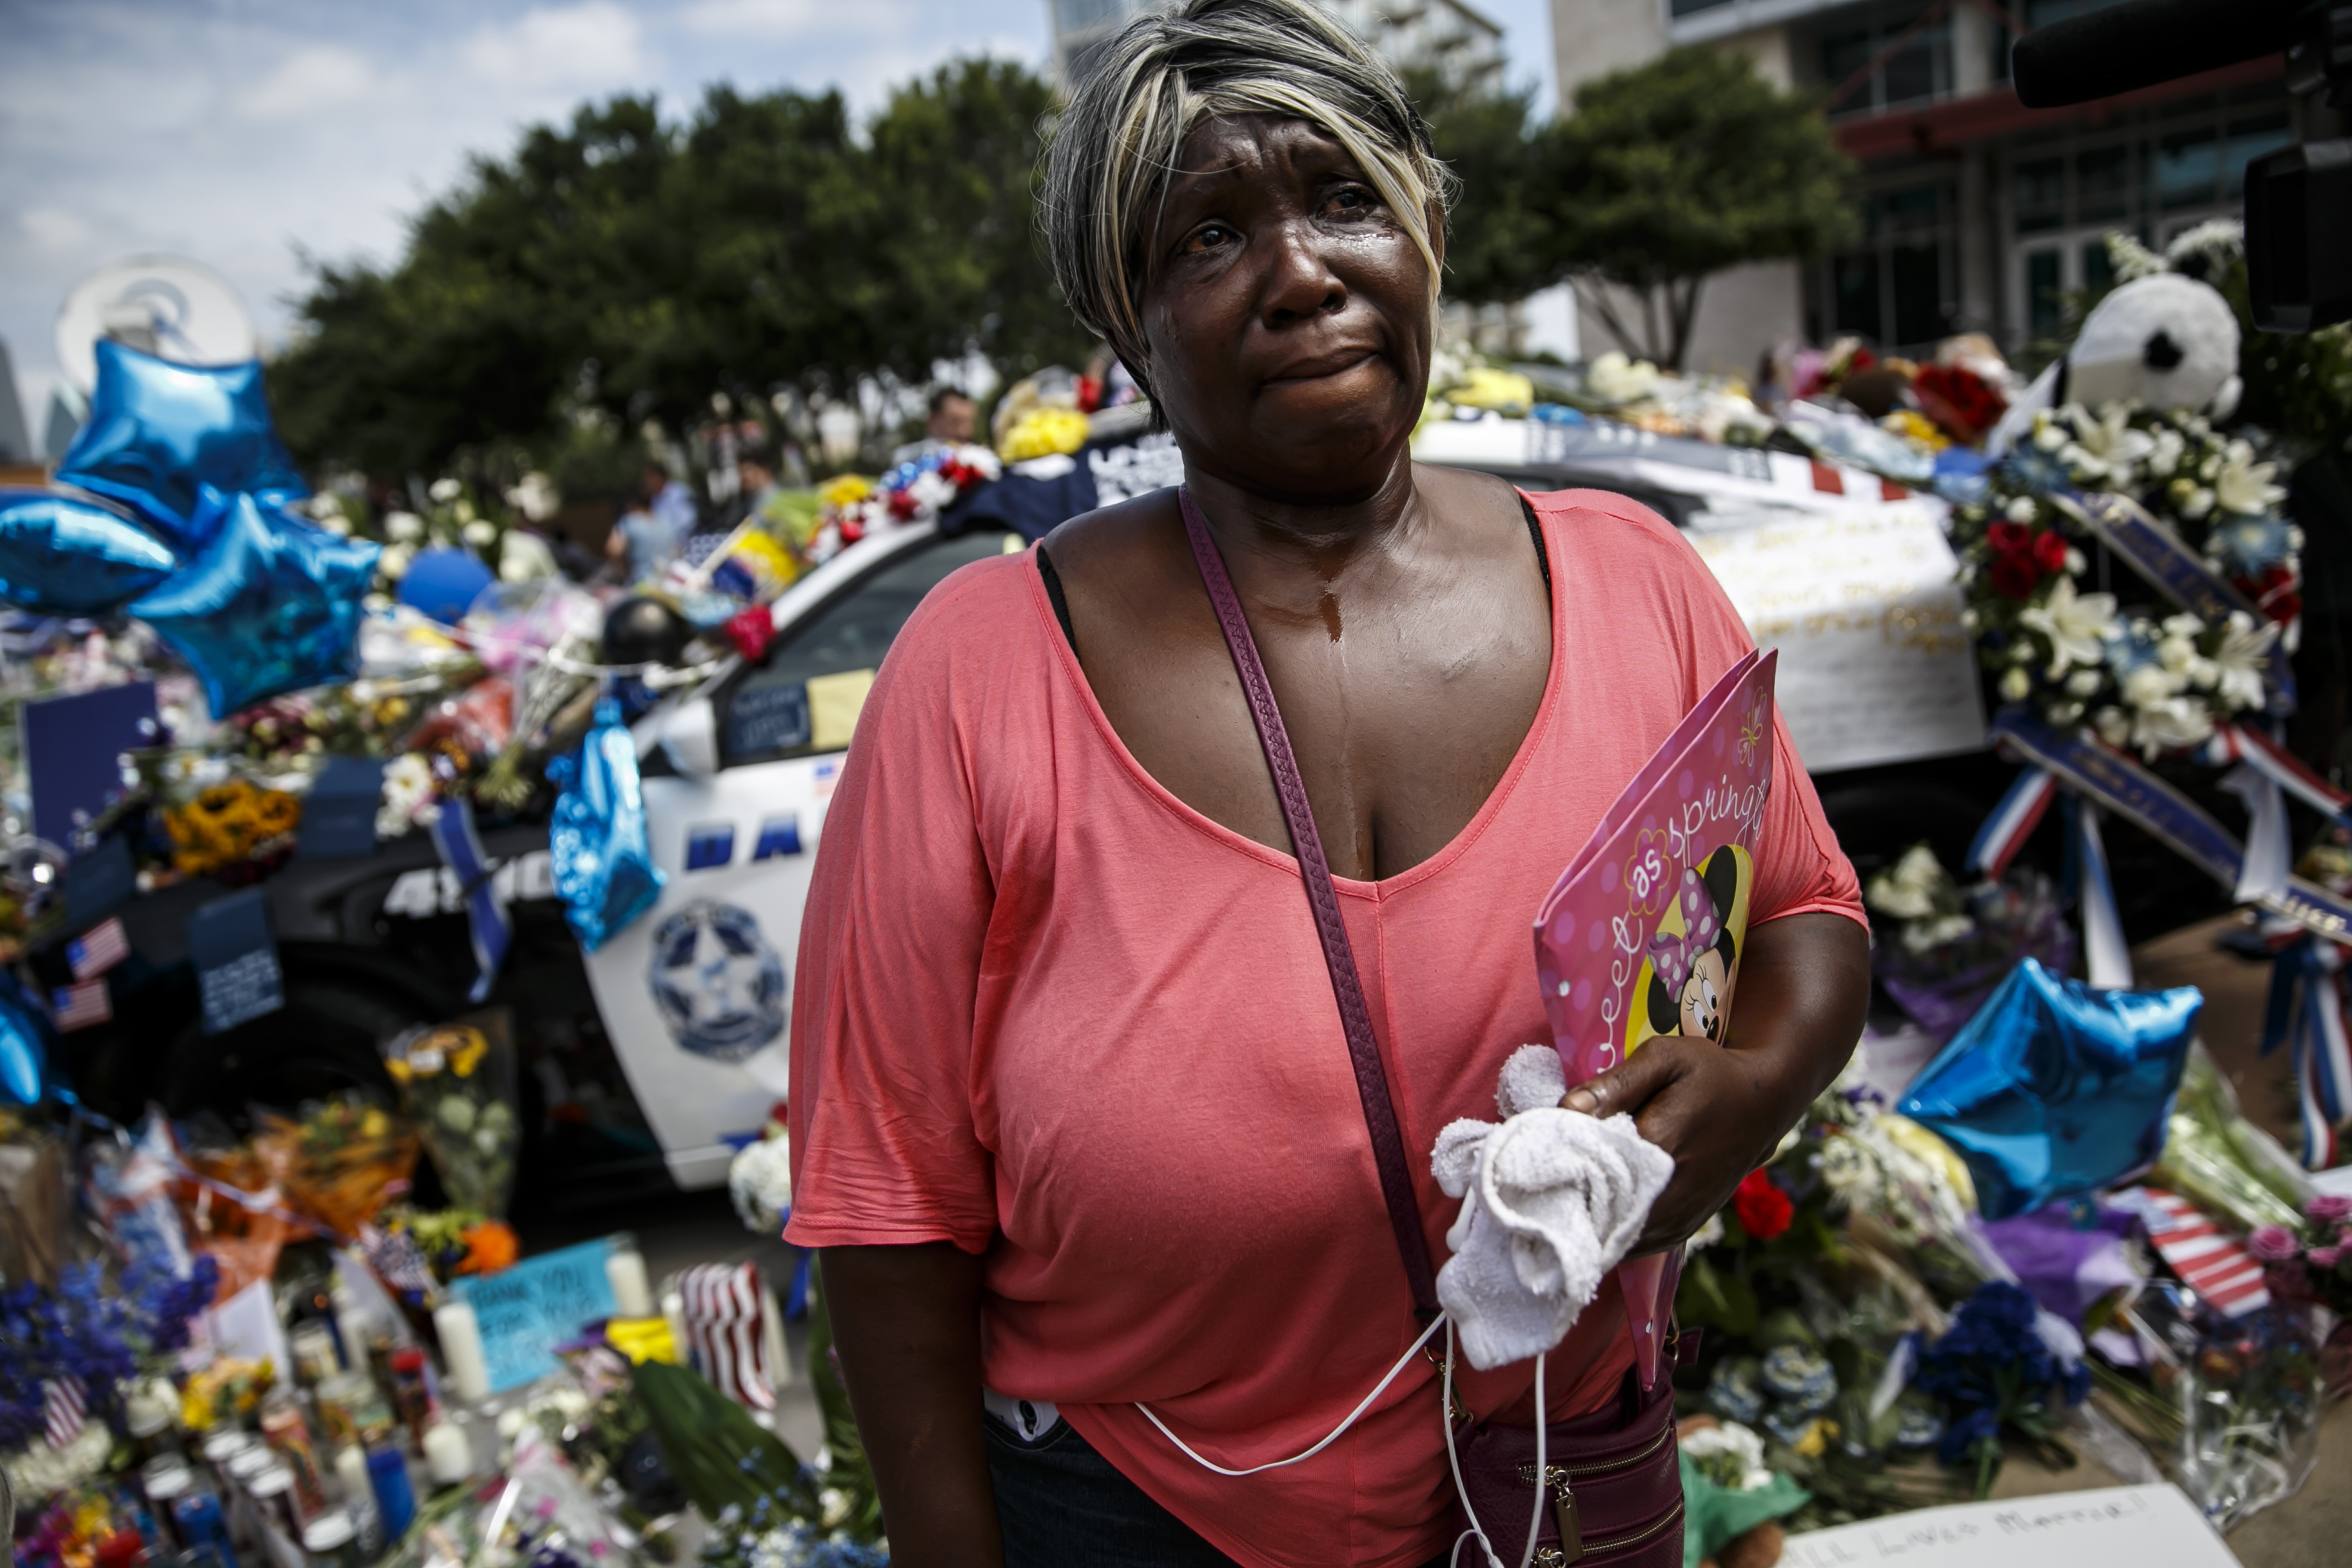 Djuana Franklin weeps at the memorial for the slain police officers killed in an attack in Dallas, Texas, on July 9, 2016.